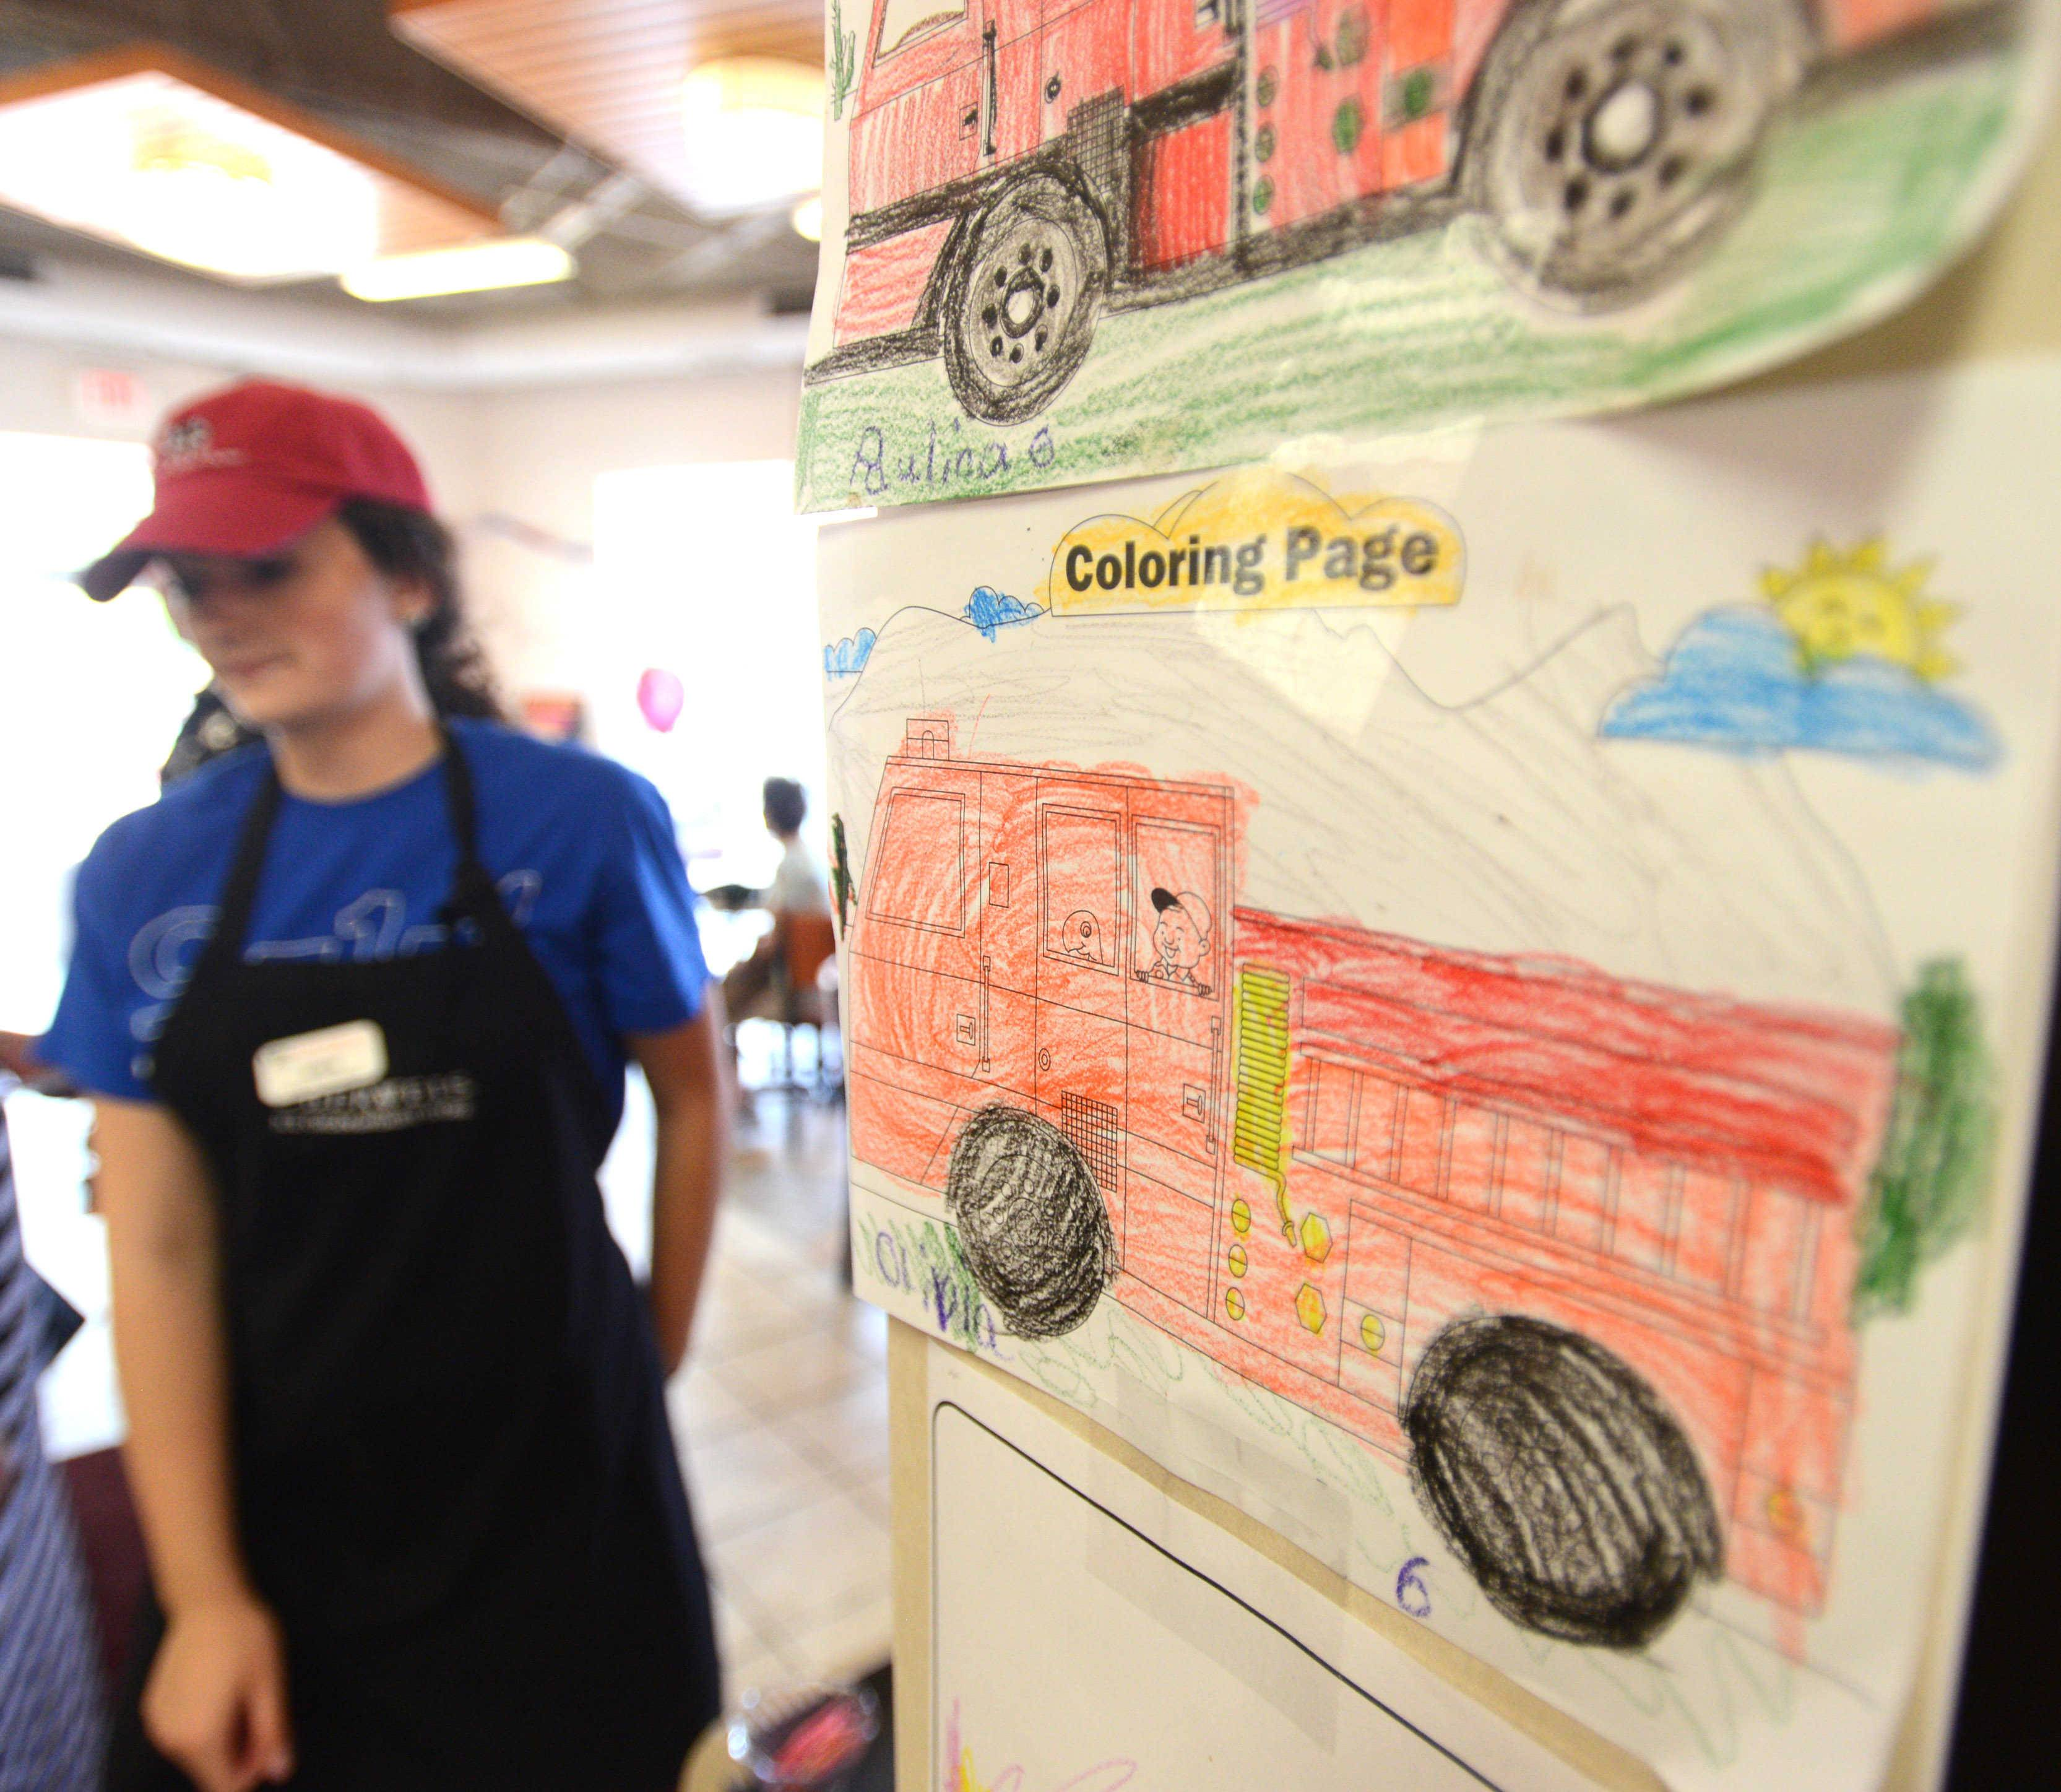 Monday's safety event featured coloring pages on the wall at the Oberweis Dairy store in Mount Prospect.